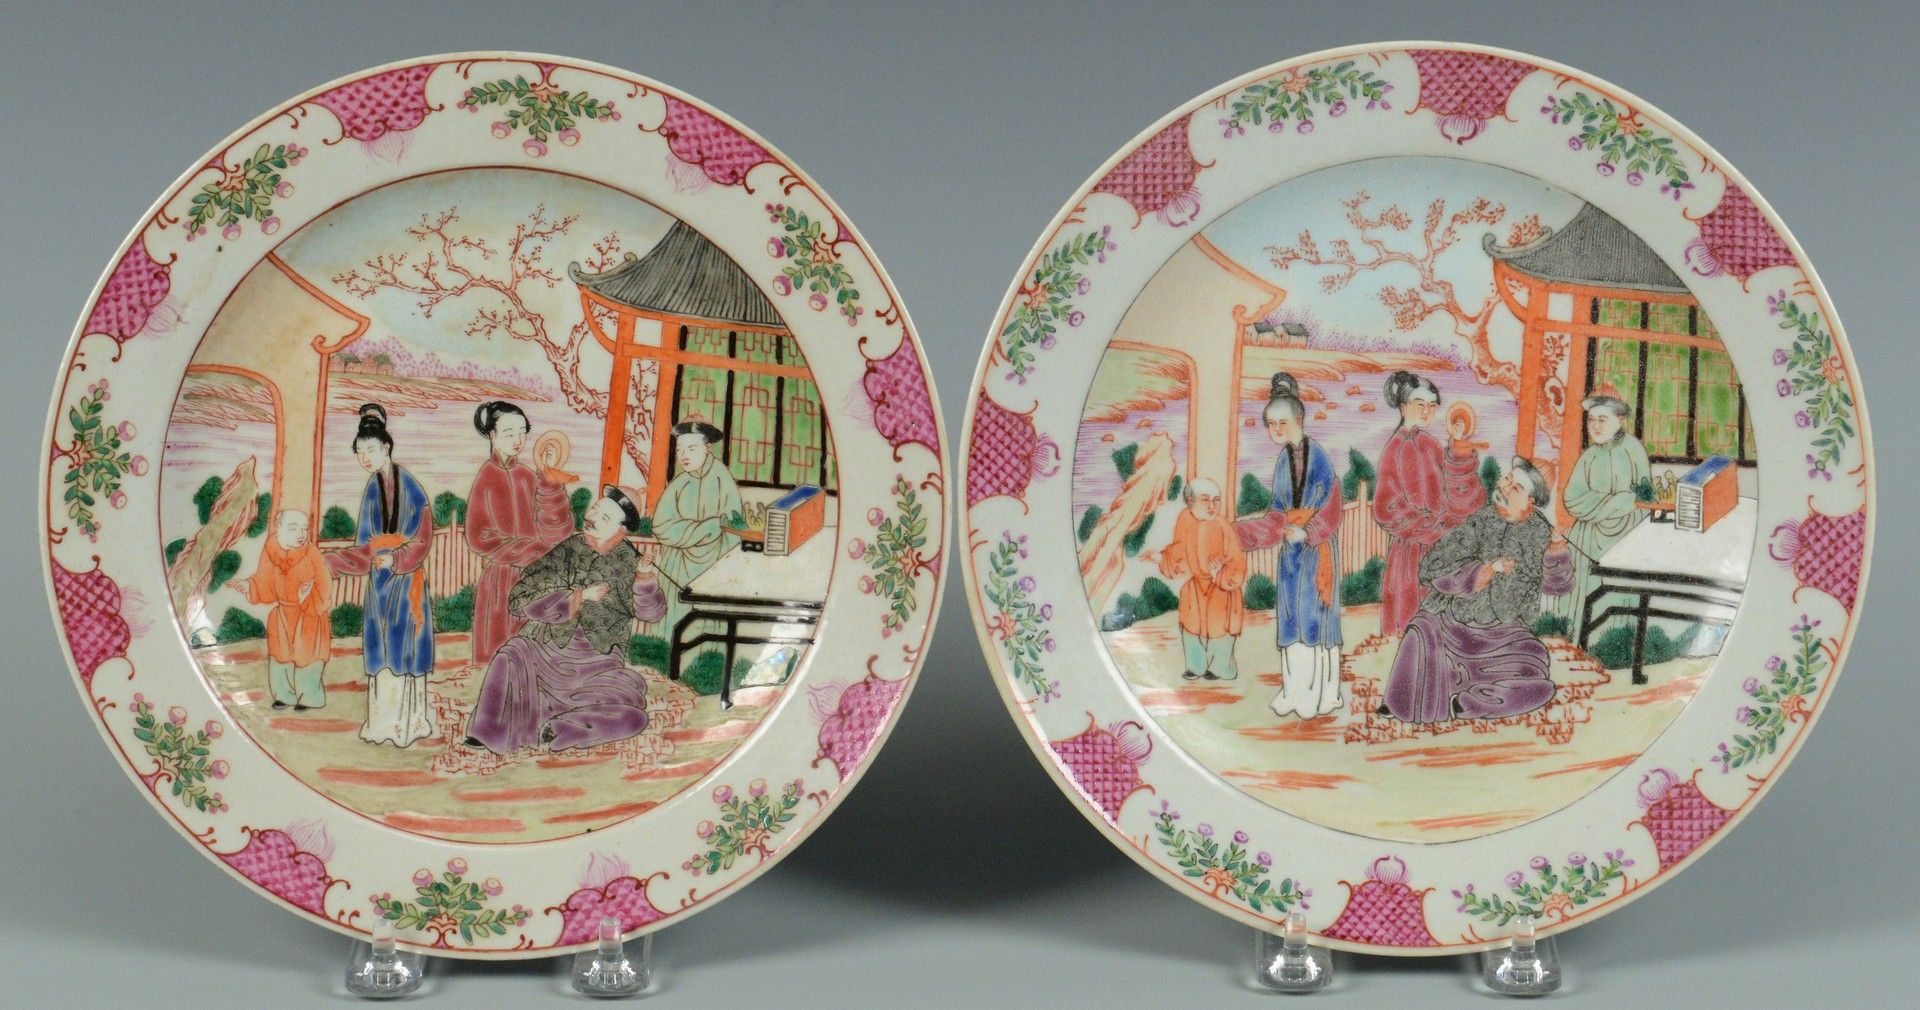 Lot 3383232: 5 Chinese Famille Rose Porcelain Items